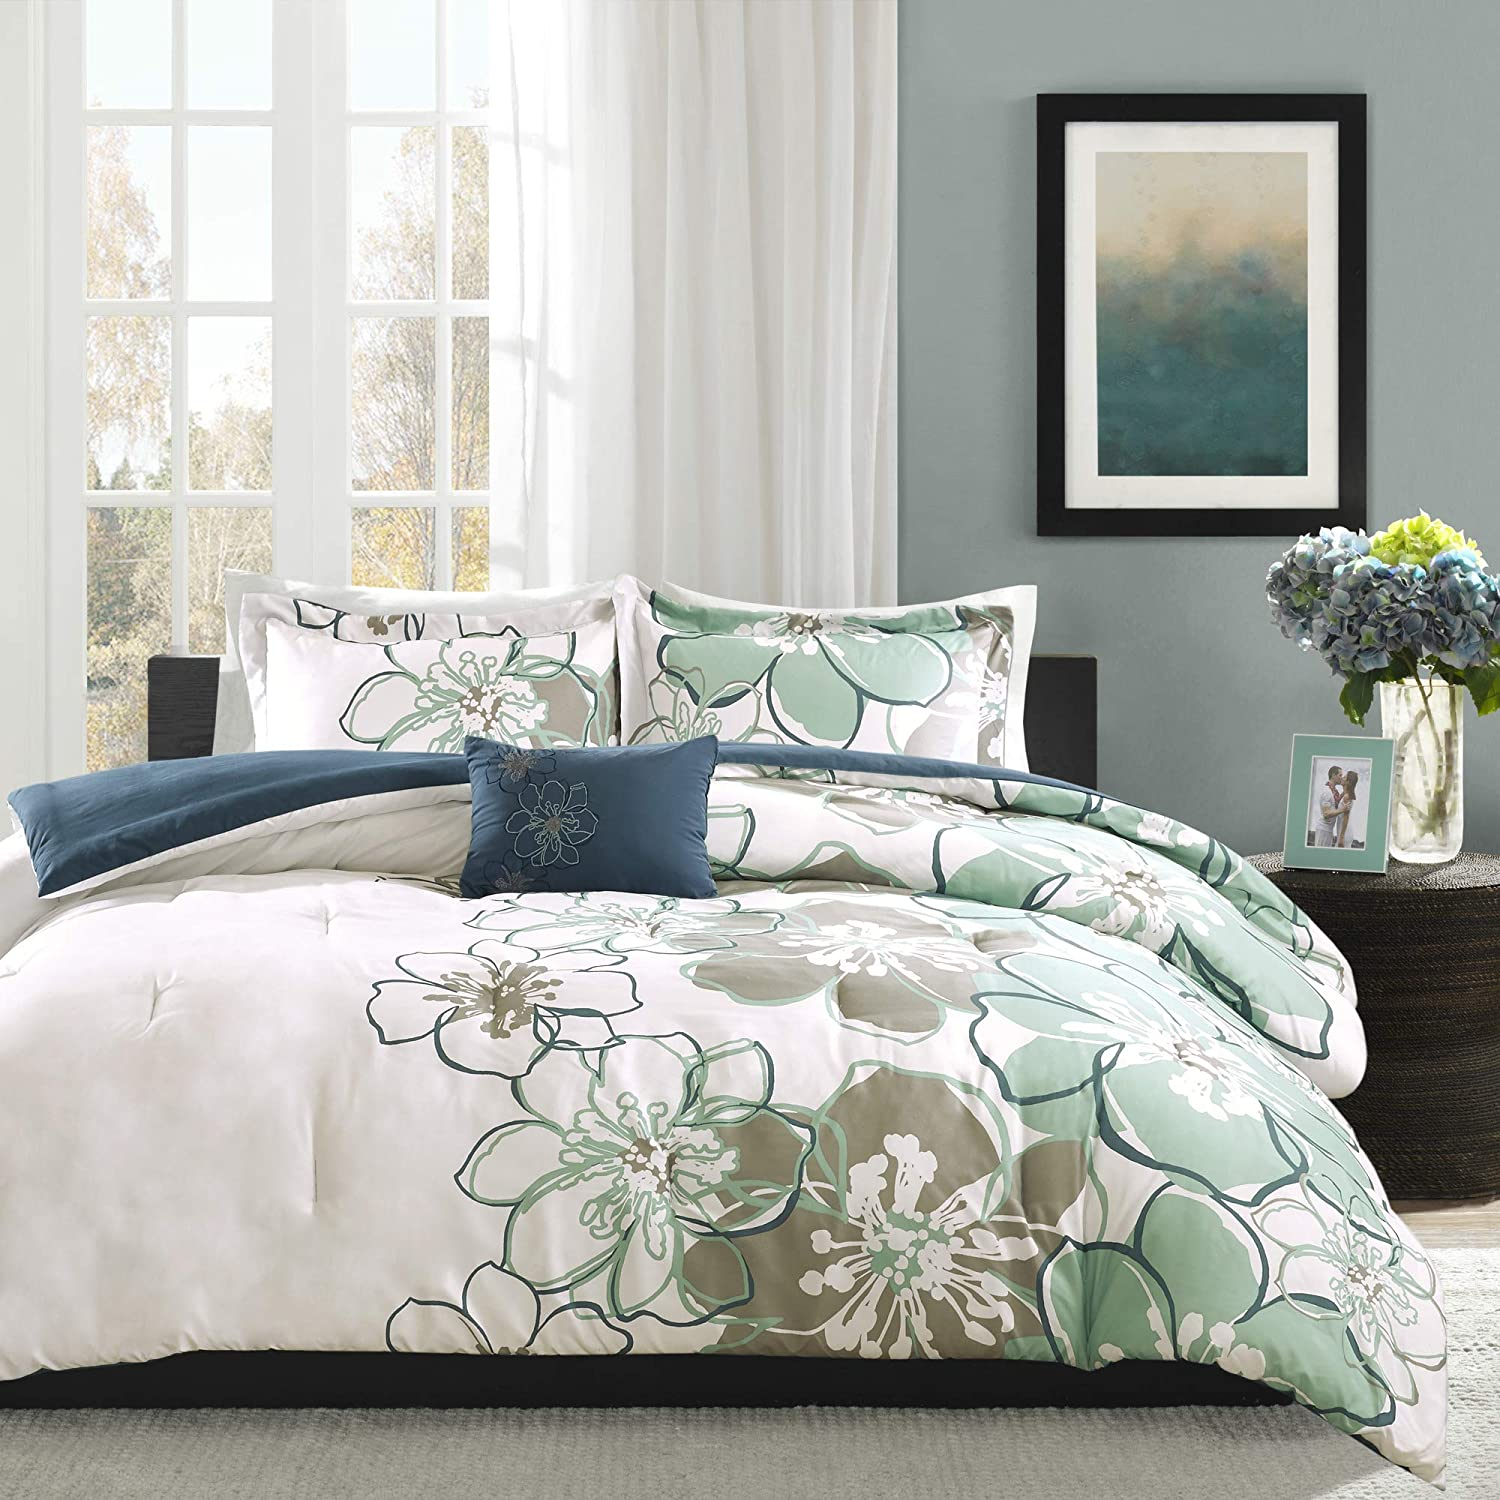 Floral Mi-Zone Allison Comforter Set Full//Queen Size 4 Piece Bed Sets Yellow Ultra Soft Microfiber Teen Bedding for Girls Bedroom Mi Zone MZ10-517 White Grey